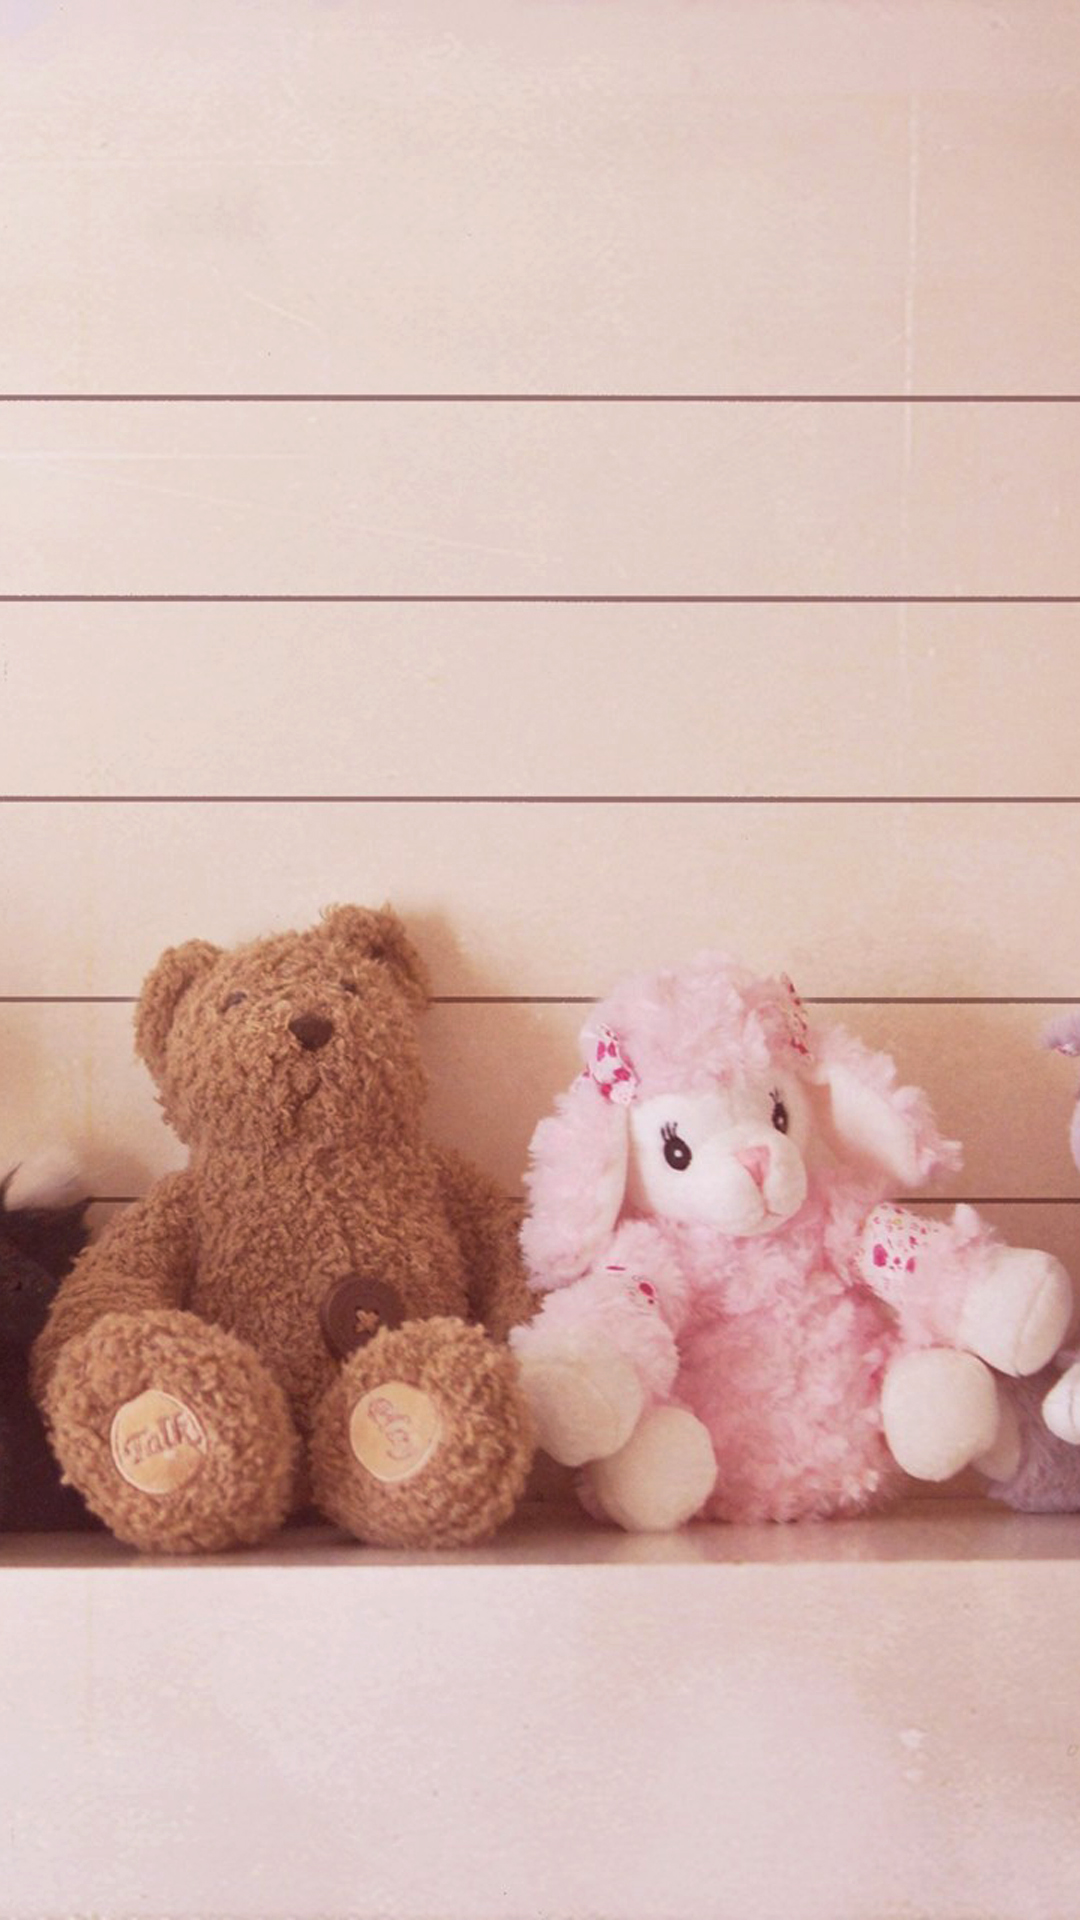 Cute teddy bear couple mobile wallpaper phone background voltagebd Gallery